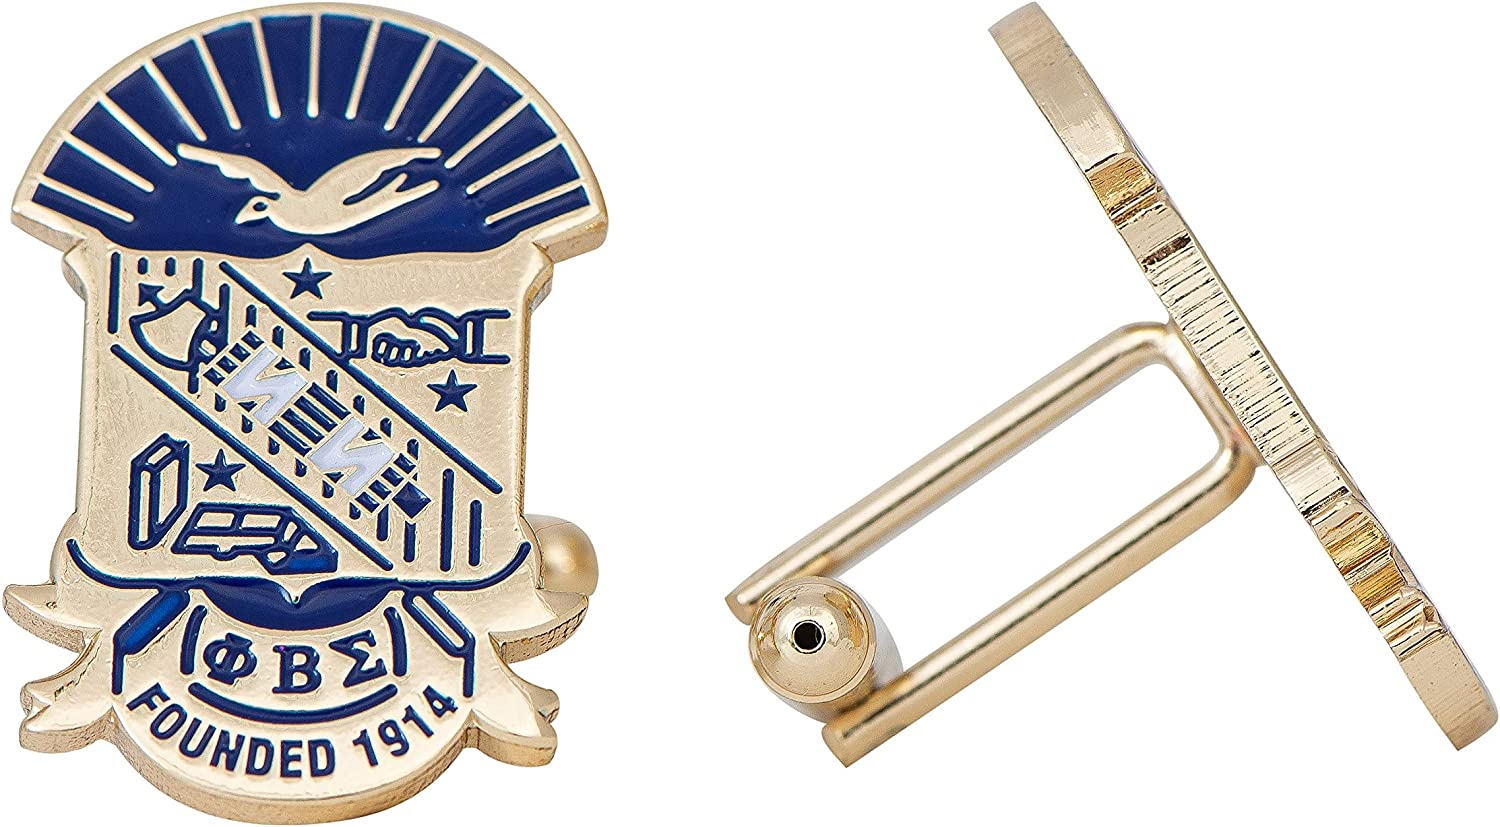 Desert Cactus Phi Beta Sigma Fraternity Greek Formal Wear Blazer Jacket (Gold Color Crest Cufflinks)